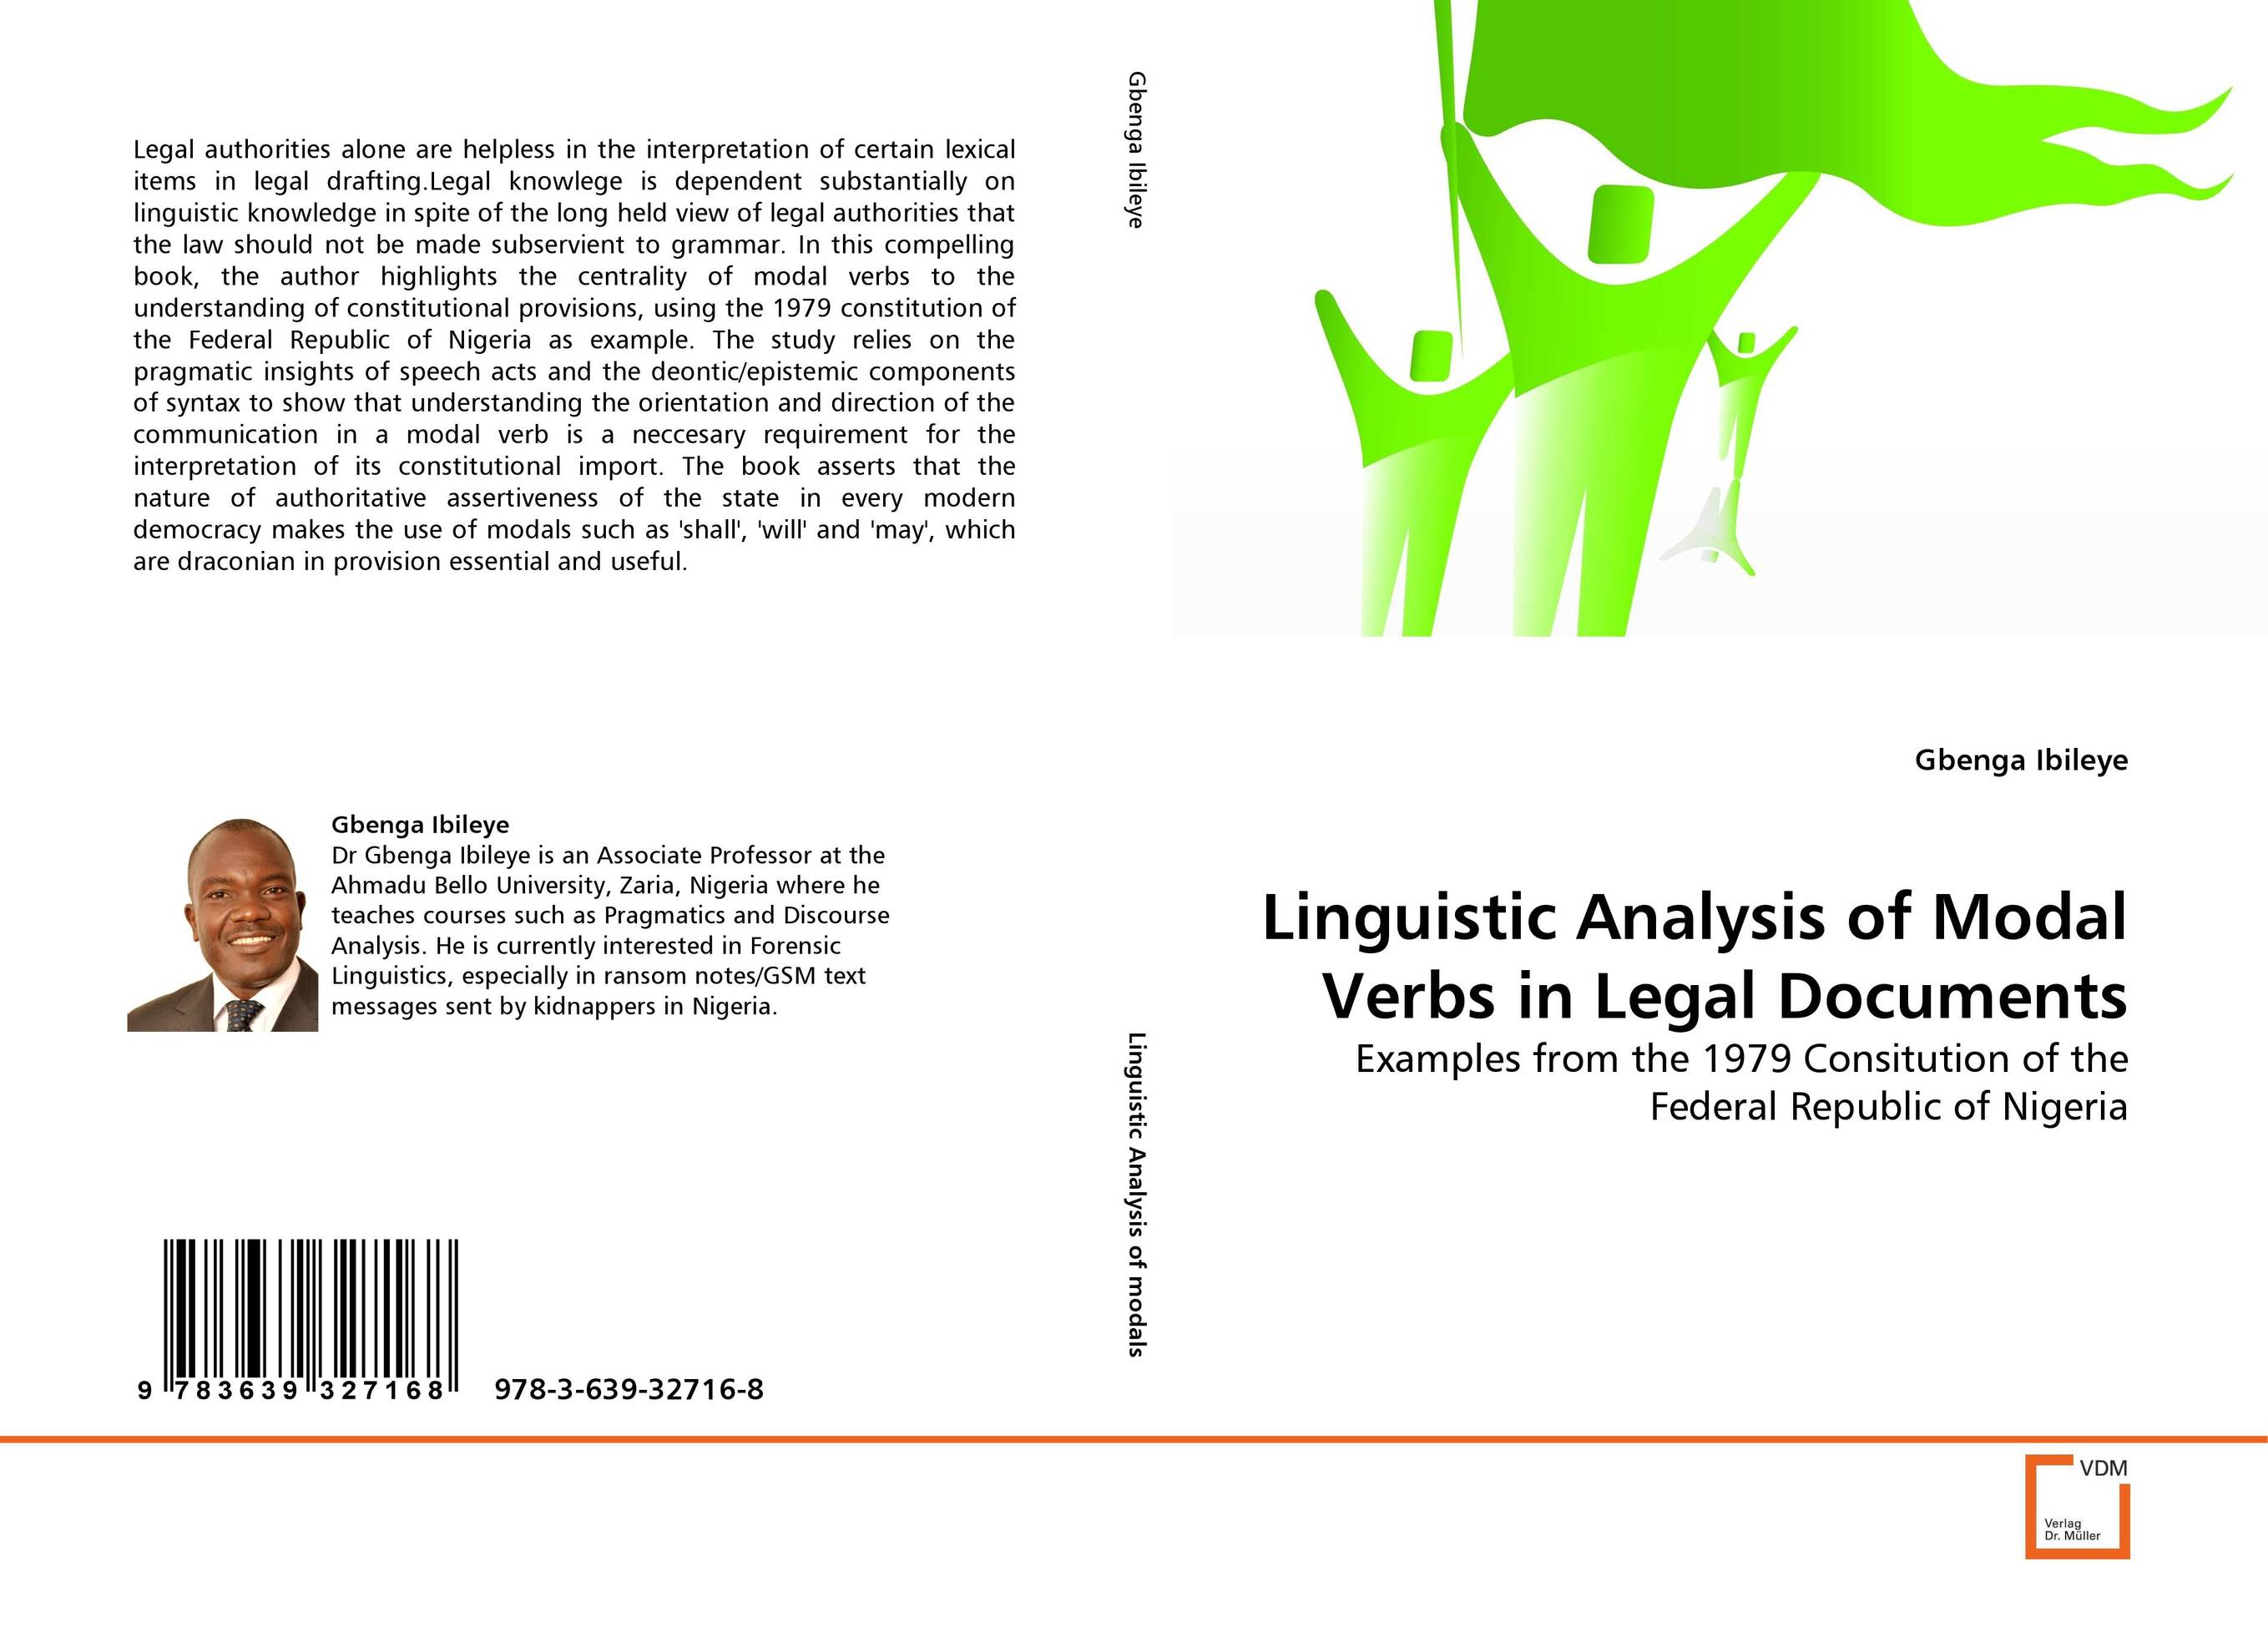 Linguistic Analysis of Modal Verbs in Legal Documents pramod kumar verma yield gap and constraints analysis in groundnut production